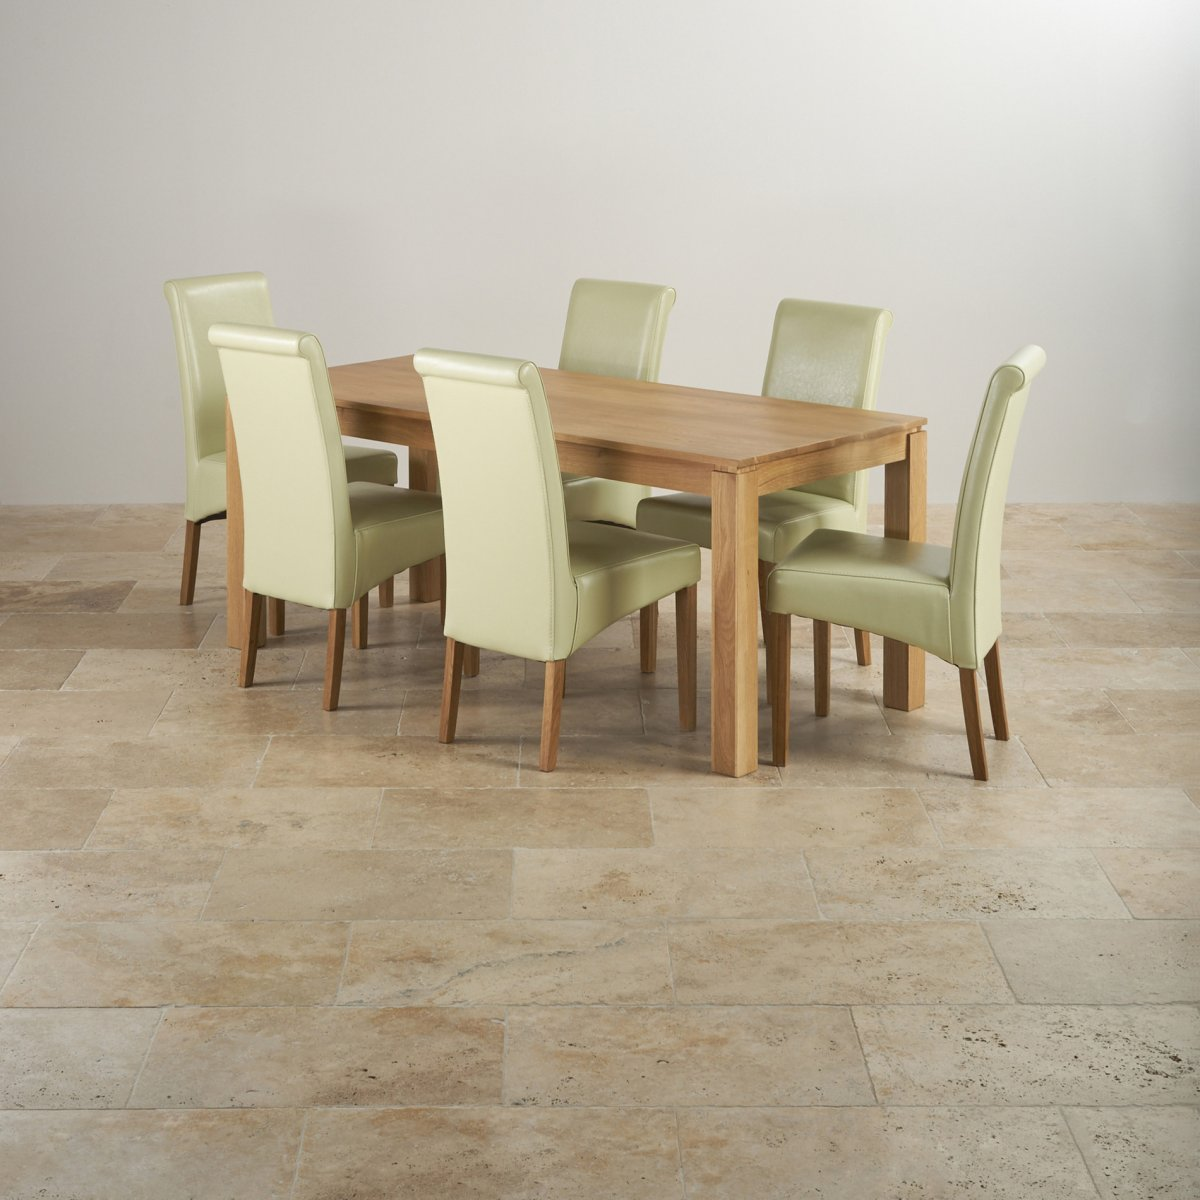 dining table set 6 chairs best gaming chair 2018 galway in oak 6ft 43 cream leather